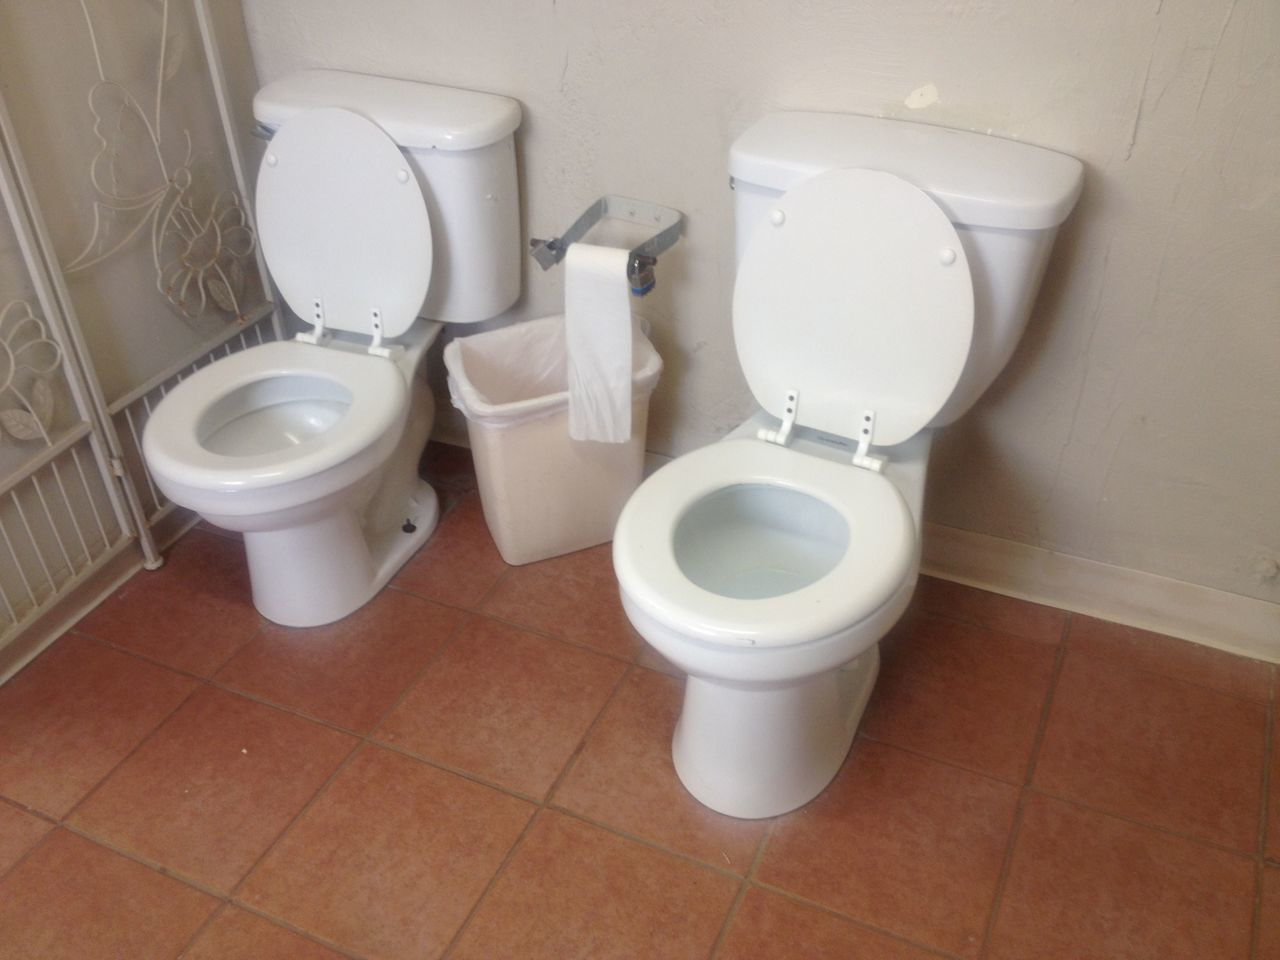 bathroom, toilet bowl, toilet, flushing toilet, indoors, domestic bathroom, convenience, white color, public building, hygiene, public restroom, high angle view, urinal, no people, urgency, bidet, day